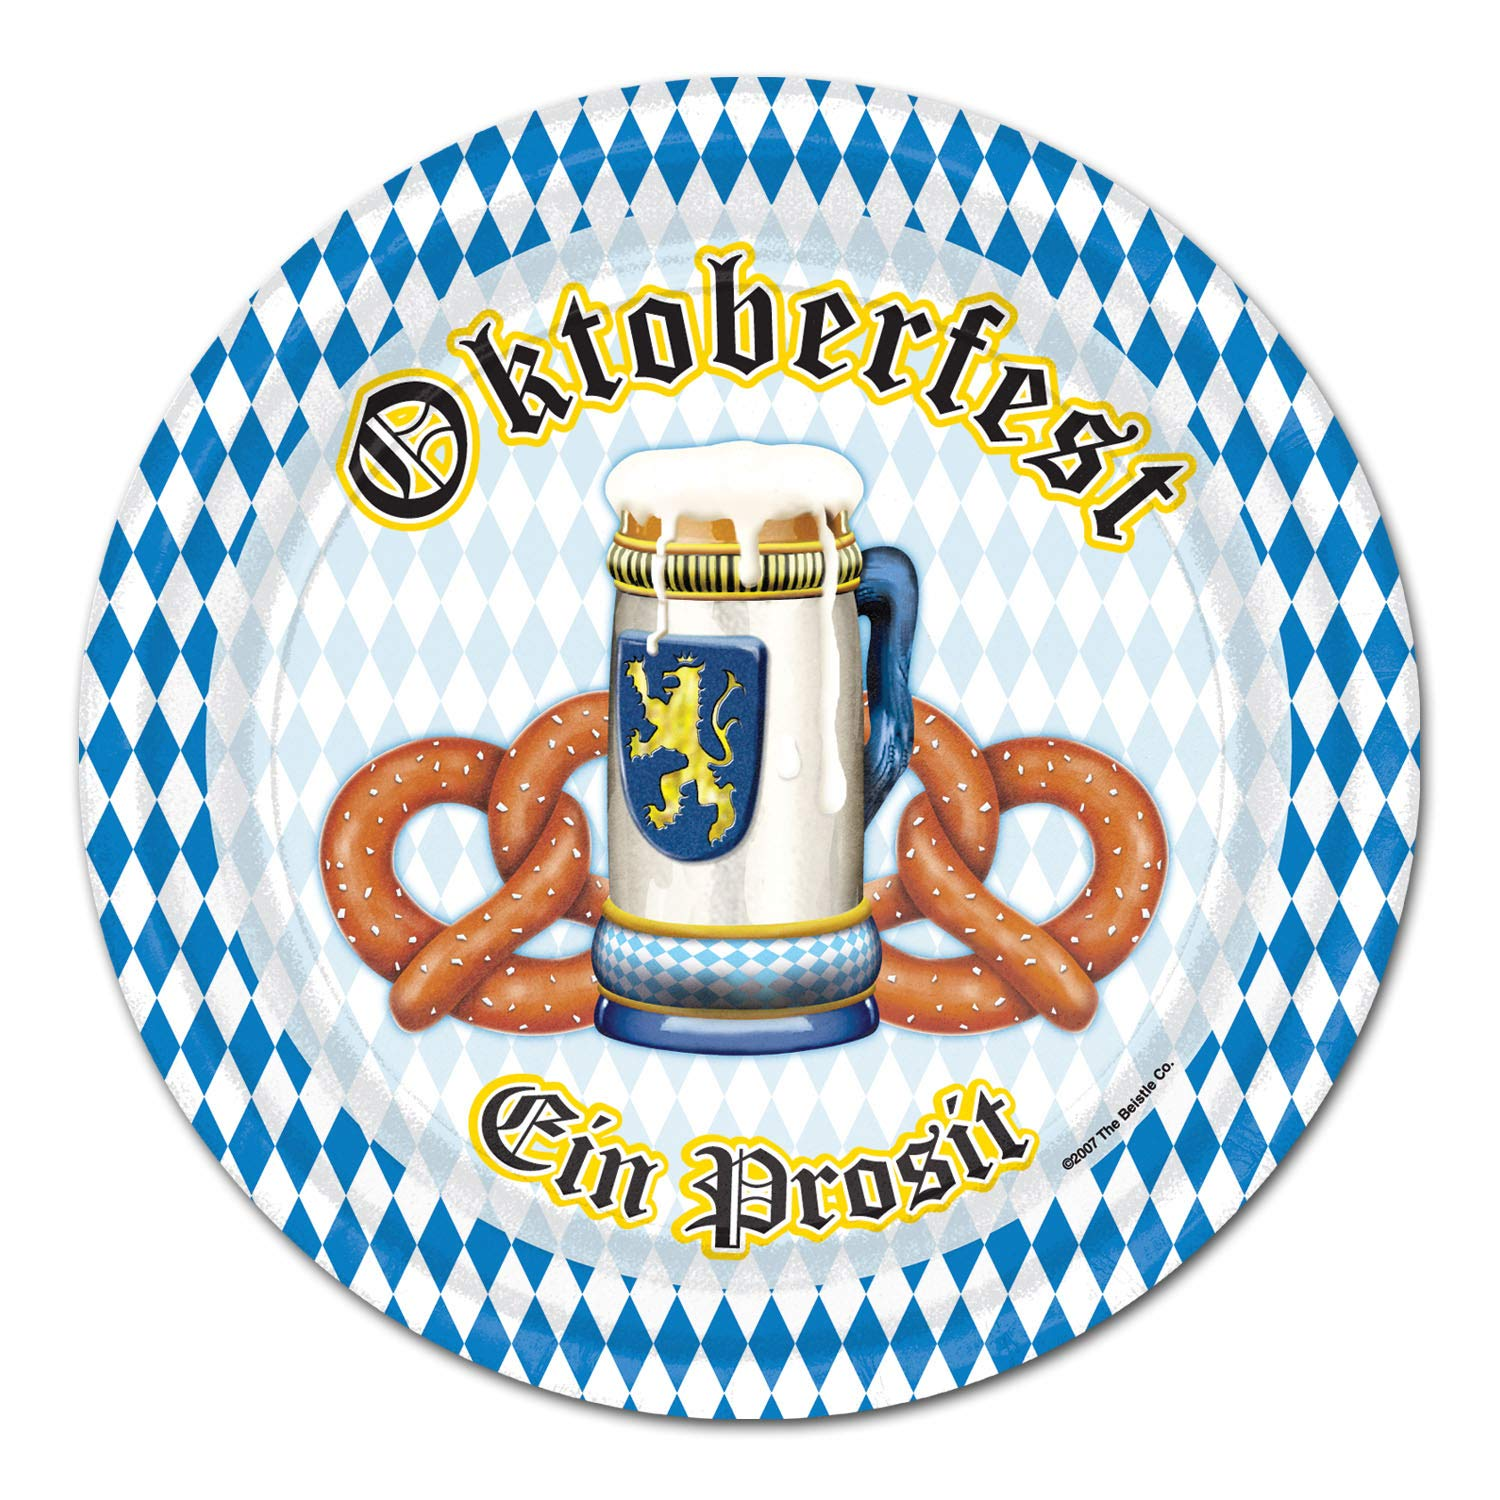 Beistle 2018 Oktoberfest EIN Prosit Dinner Plates | 9 Inches | (Party Pack: 24 Count) by Beistle